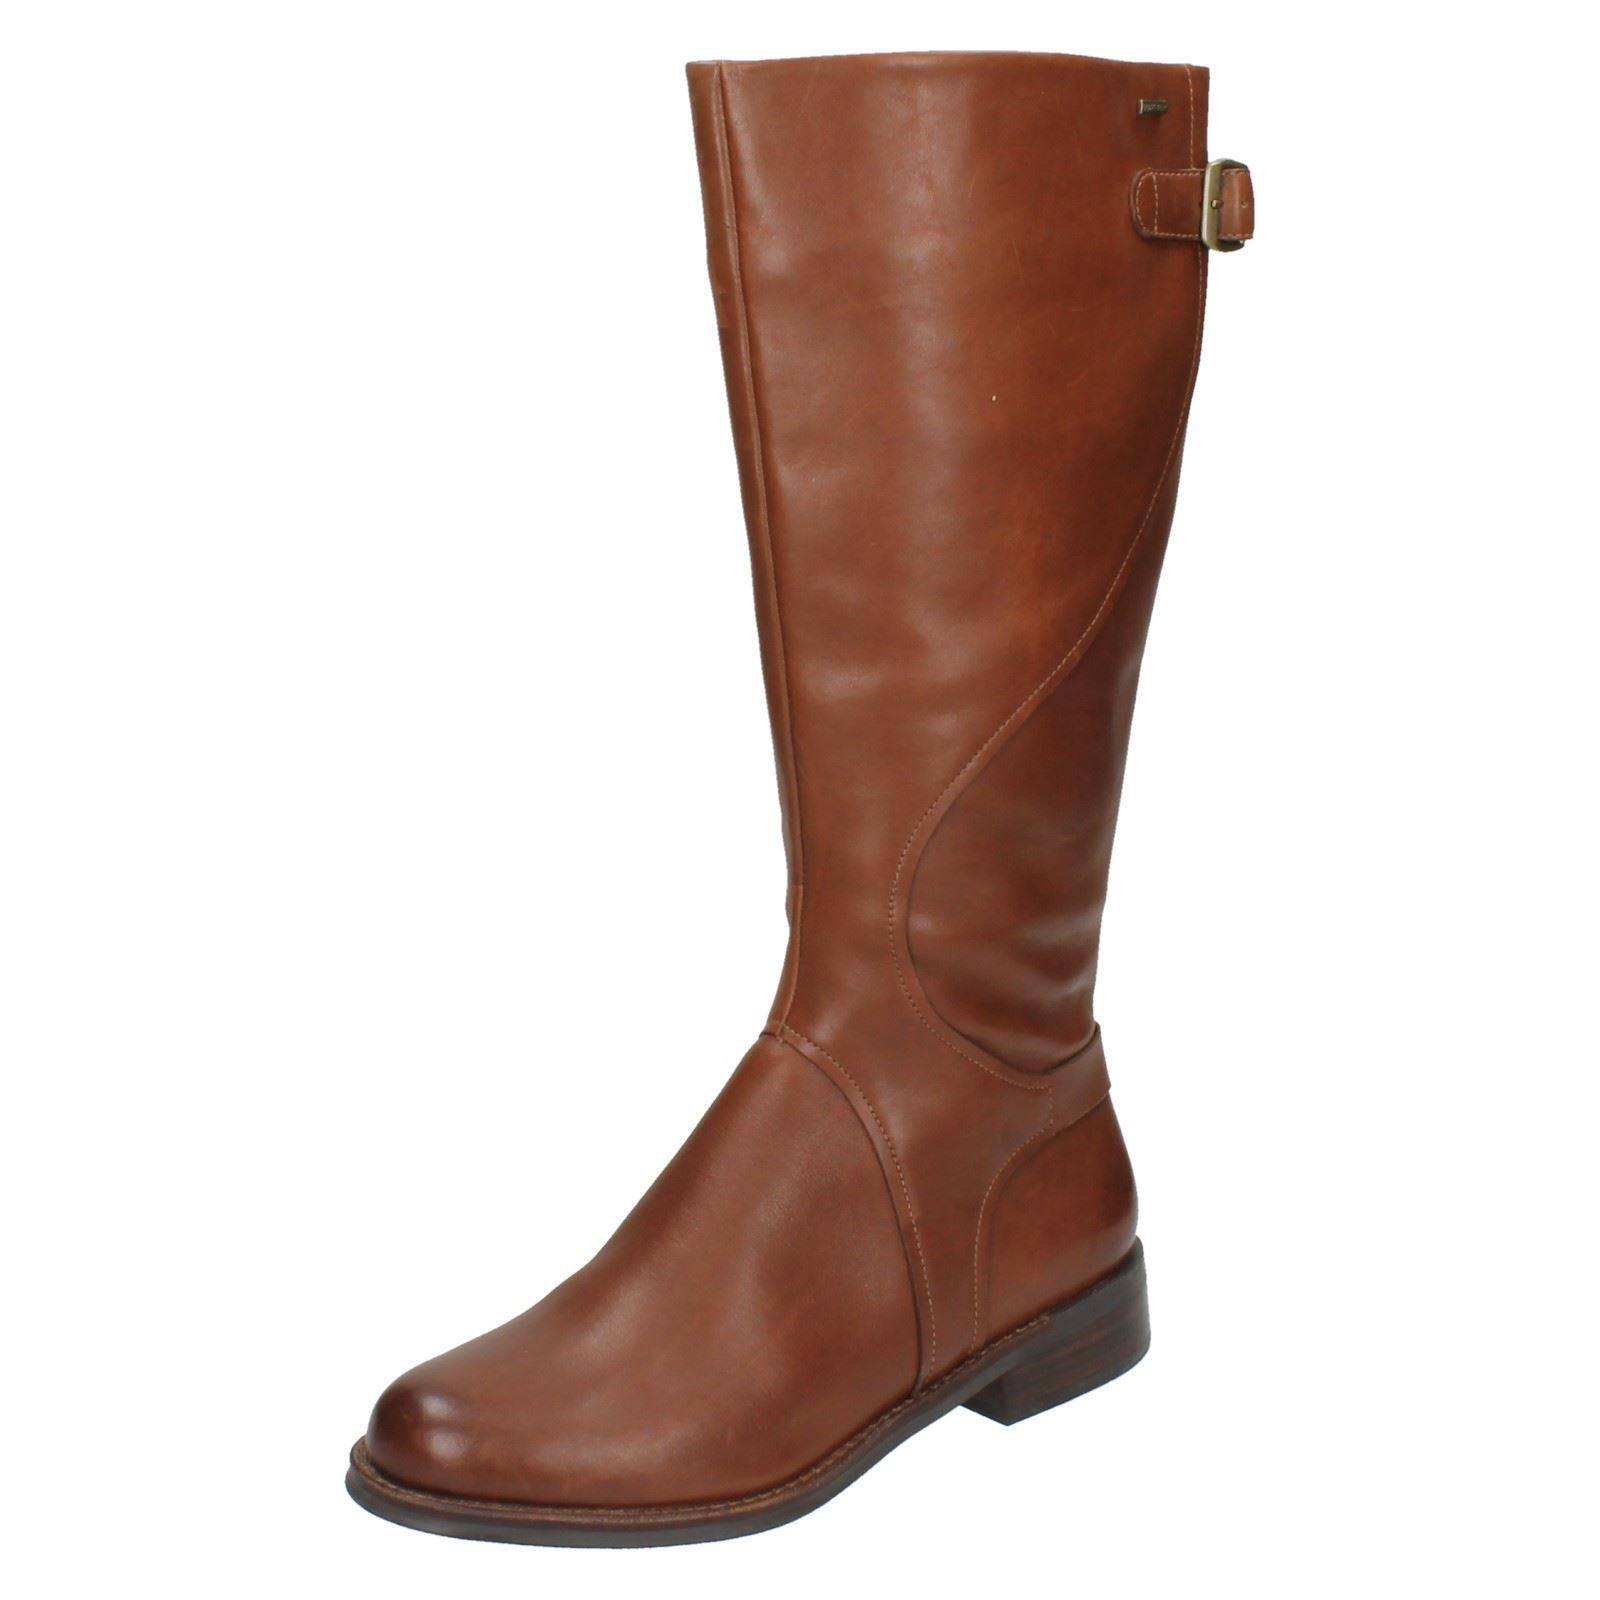 Ladies clarks gore tex high leg boots mara sand ebay for Clarks mural fresco boots